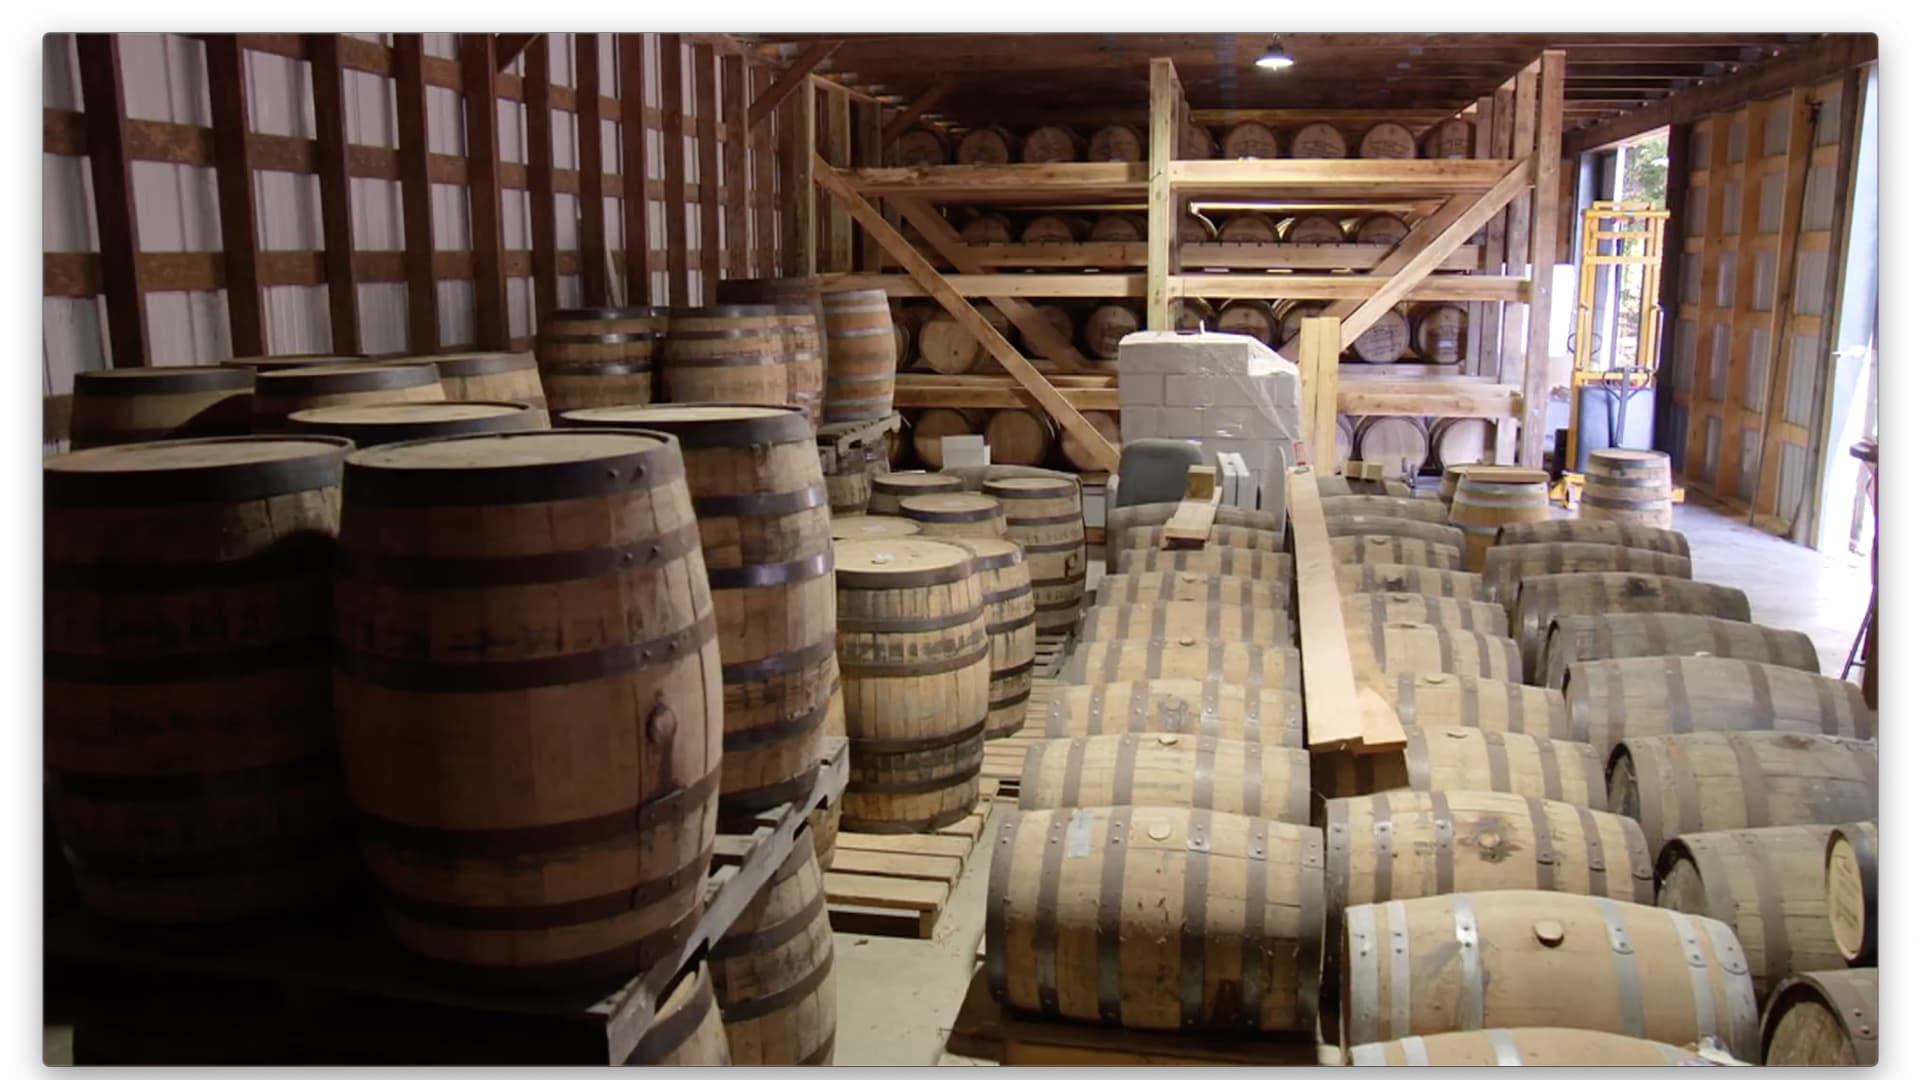 Barrels of spirits age at the Tobacco Barn Distillery in Hollywood, Maryland.